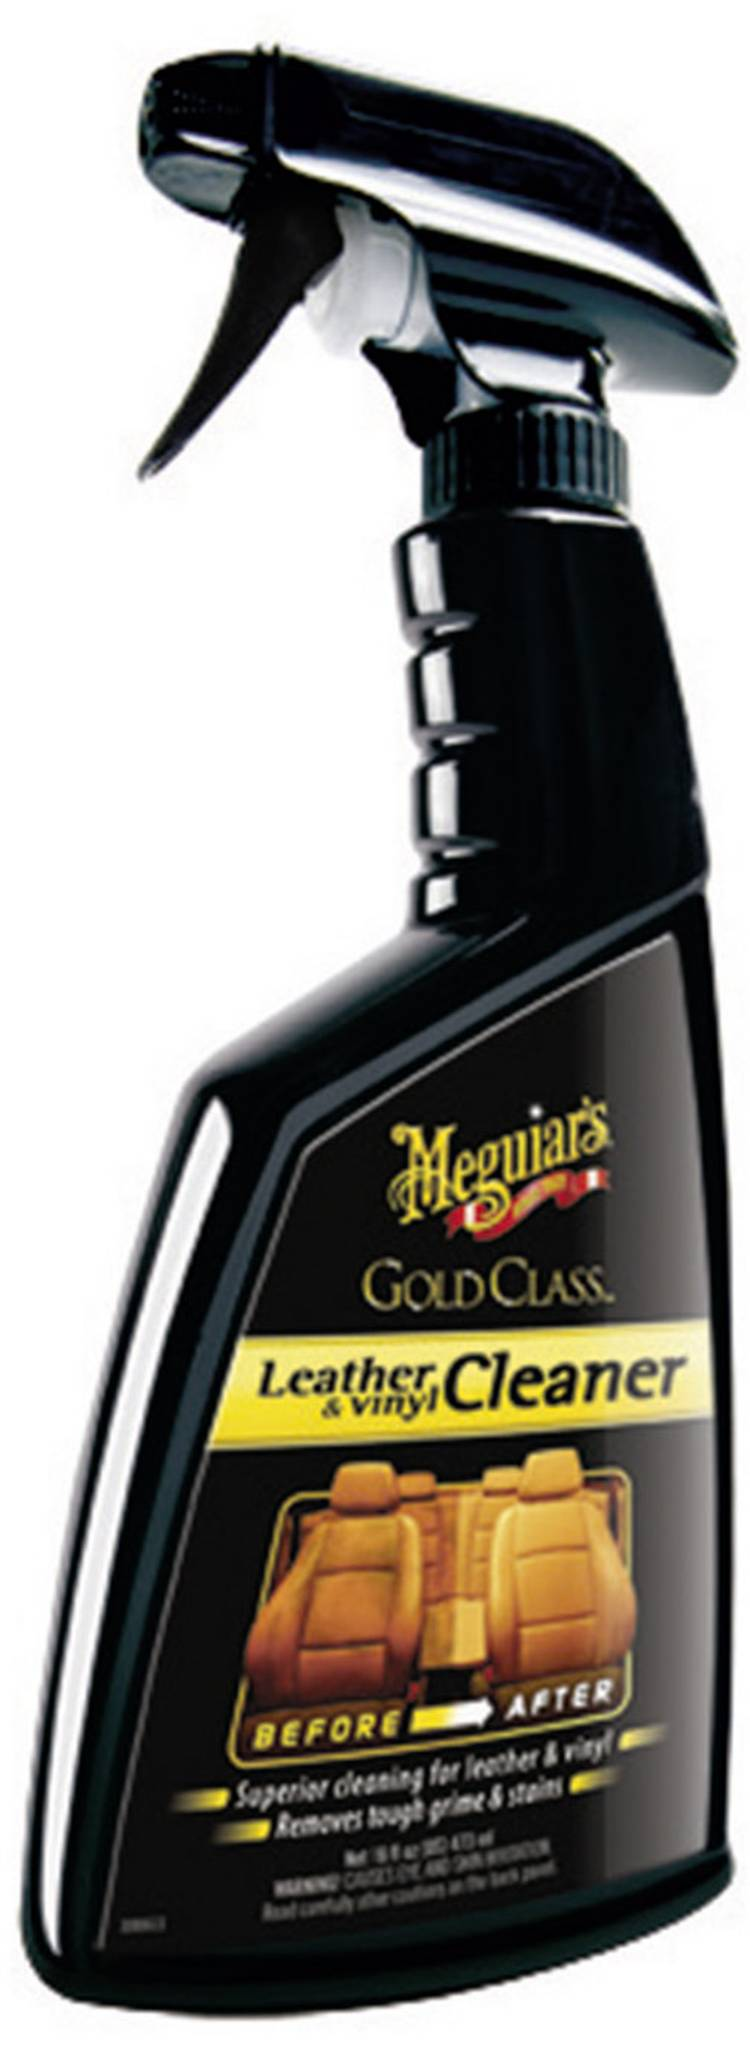 Image of Meguiars Gold Class Leather Cleaner G18516 473 ml